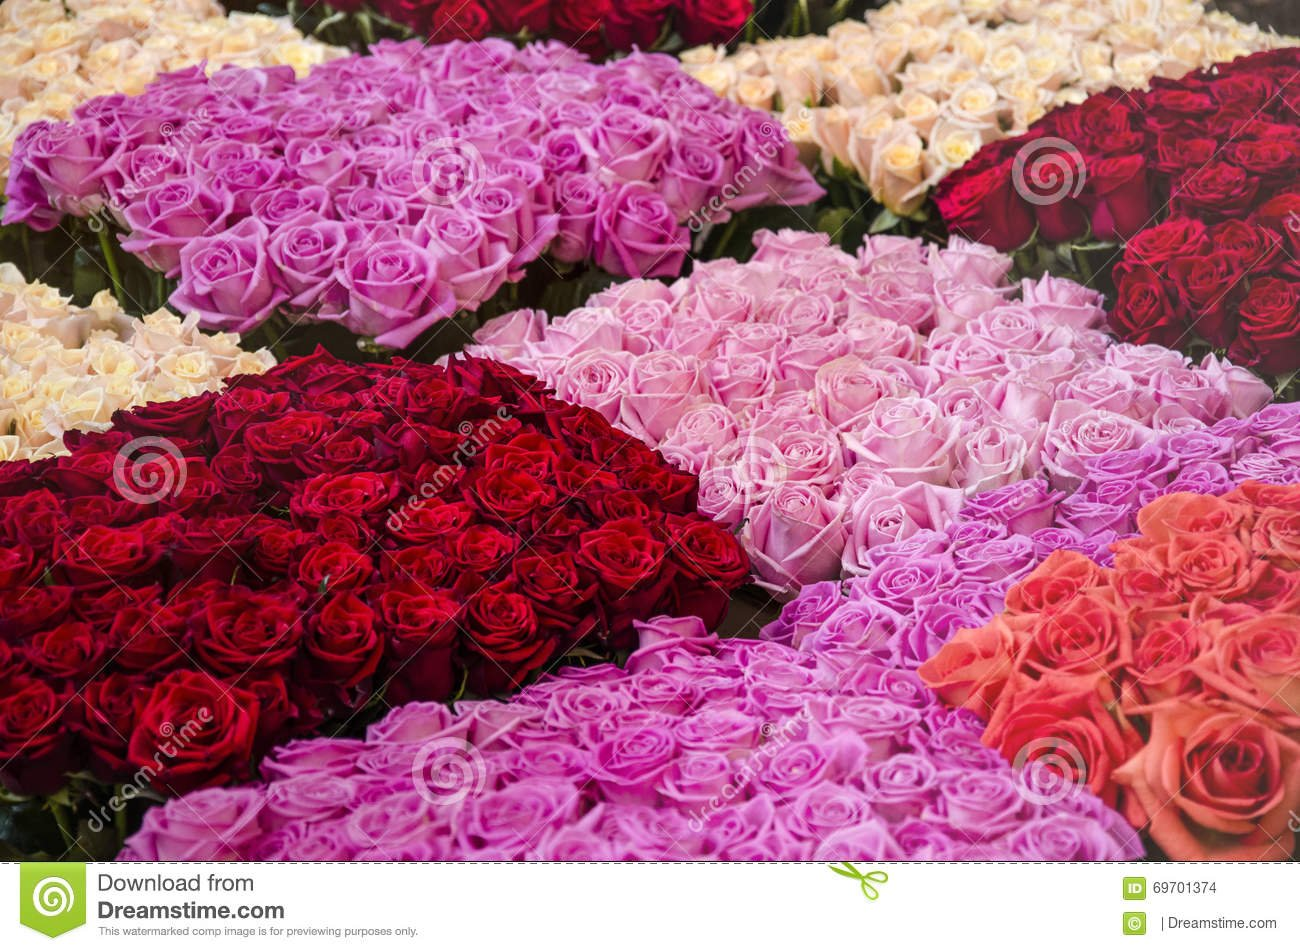 Five 5 most beautiful flowers in the world ghafla ghana probably the most beautiful flower in the world humans have started to cultivate roses since 500 bc this pretty pleasant smelling flower has such a long izmirmasajfo